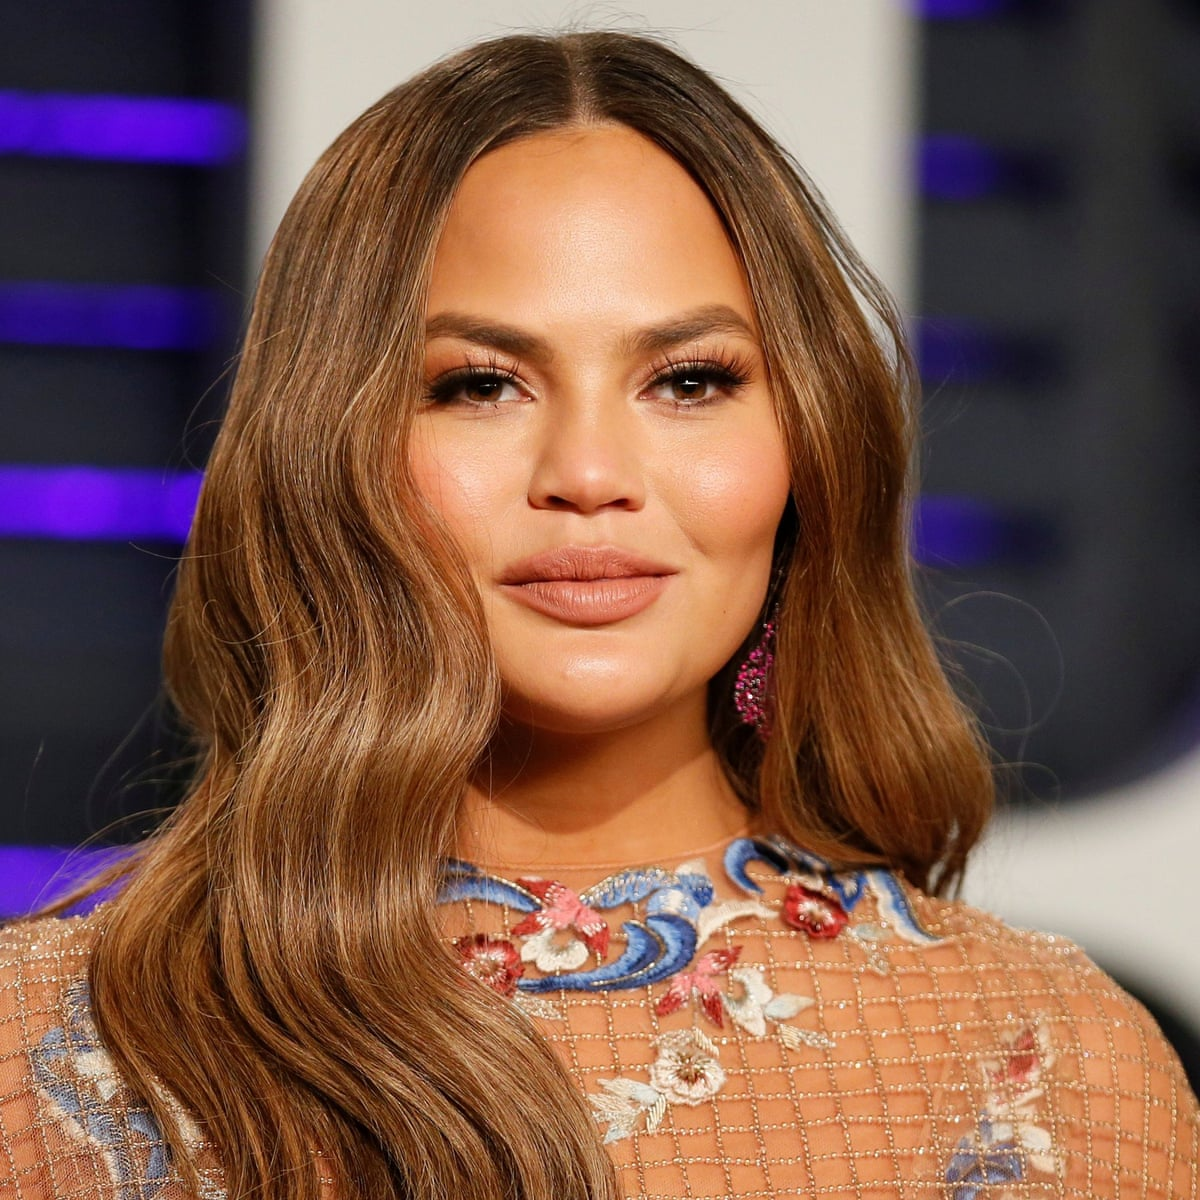 Chrissy Teigen Reveals She Underwent Procedure to Have Fat Removed From Her Cheeks